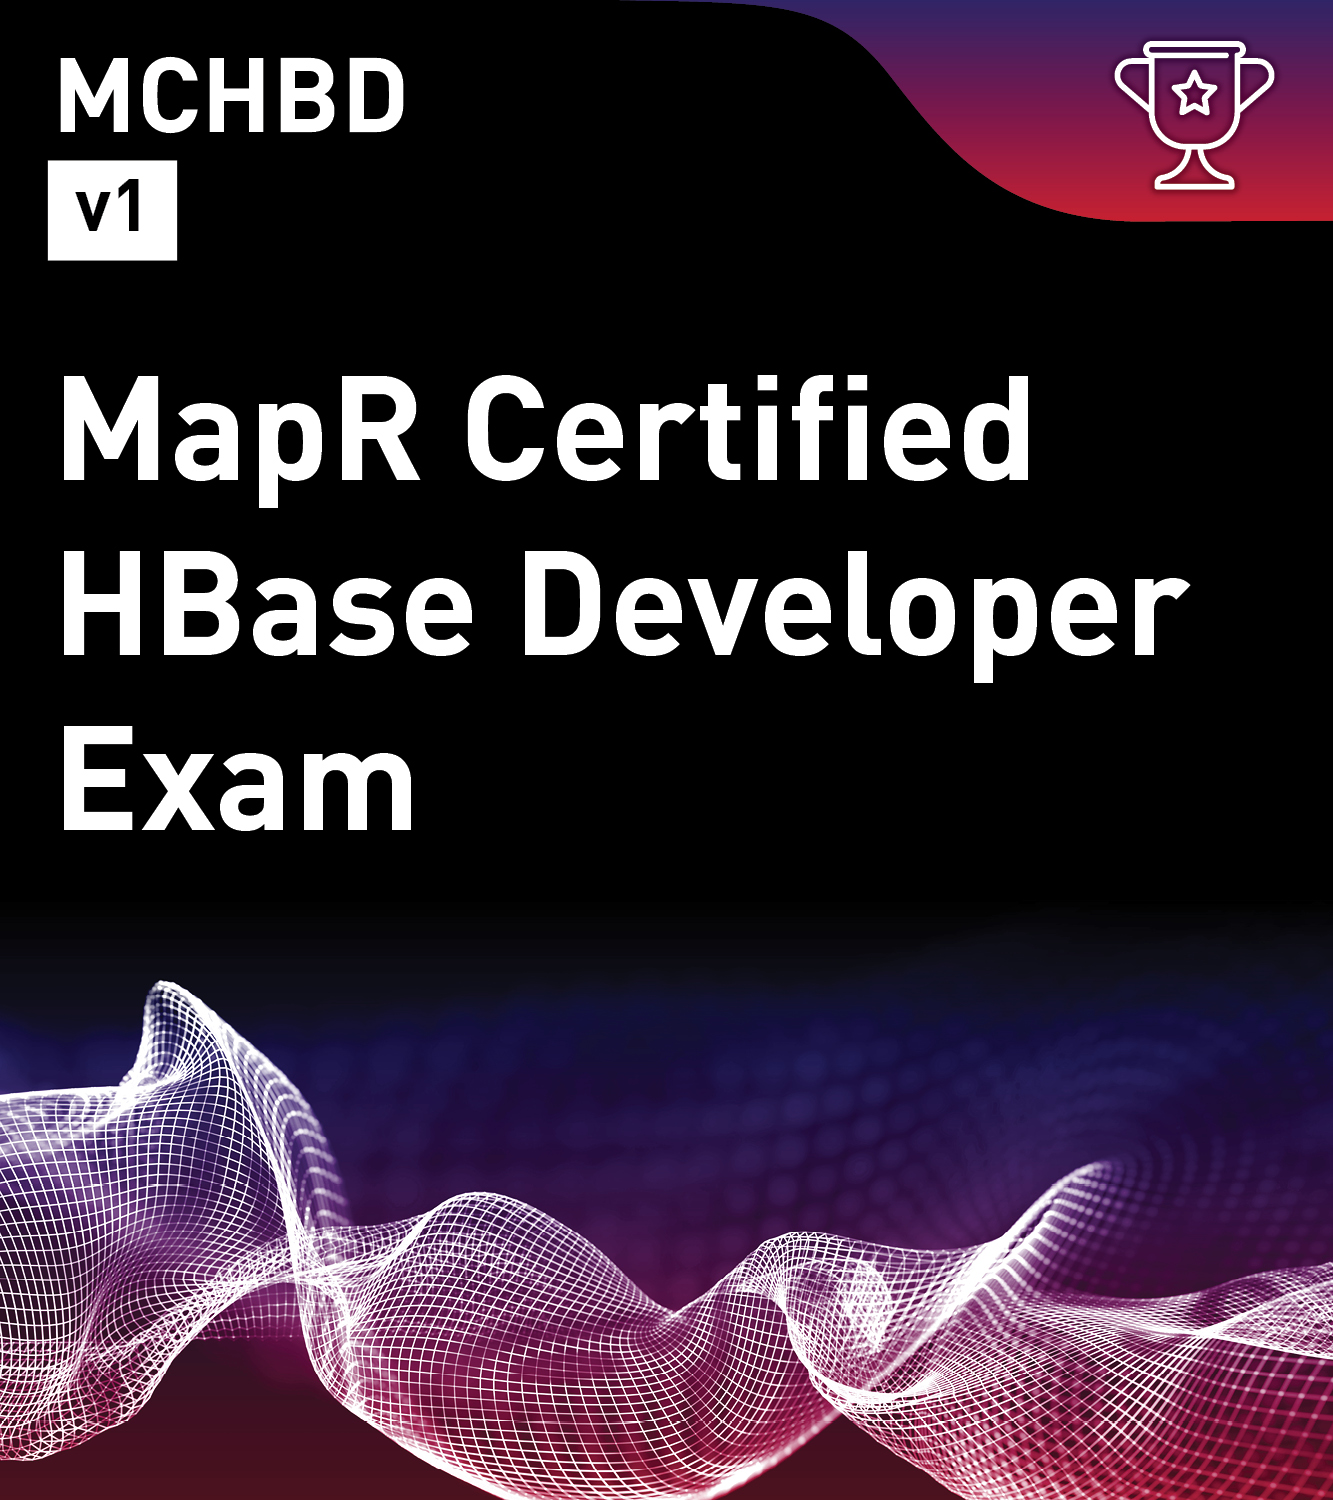 MapR Certified HBase Developer v1 (MCHBD)